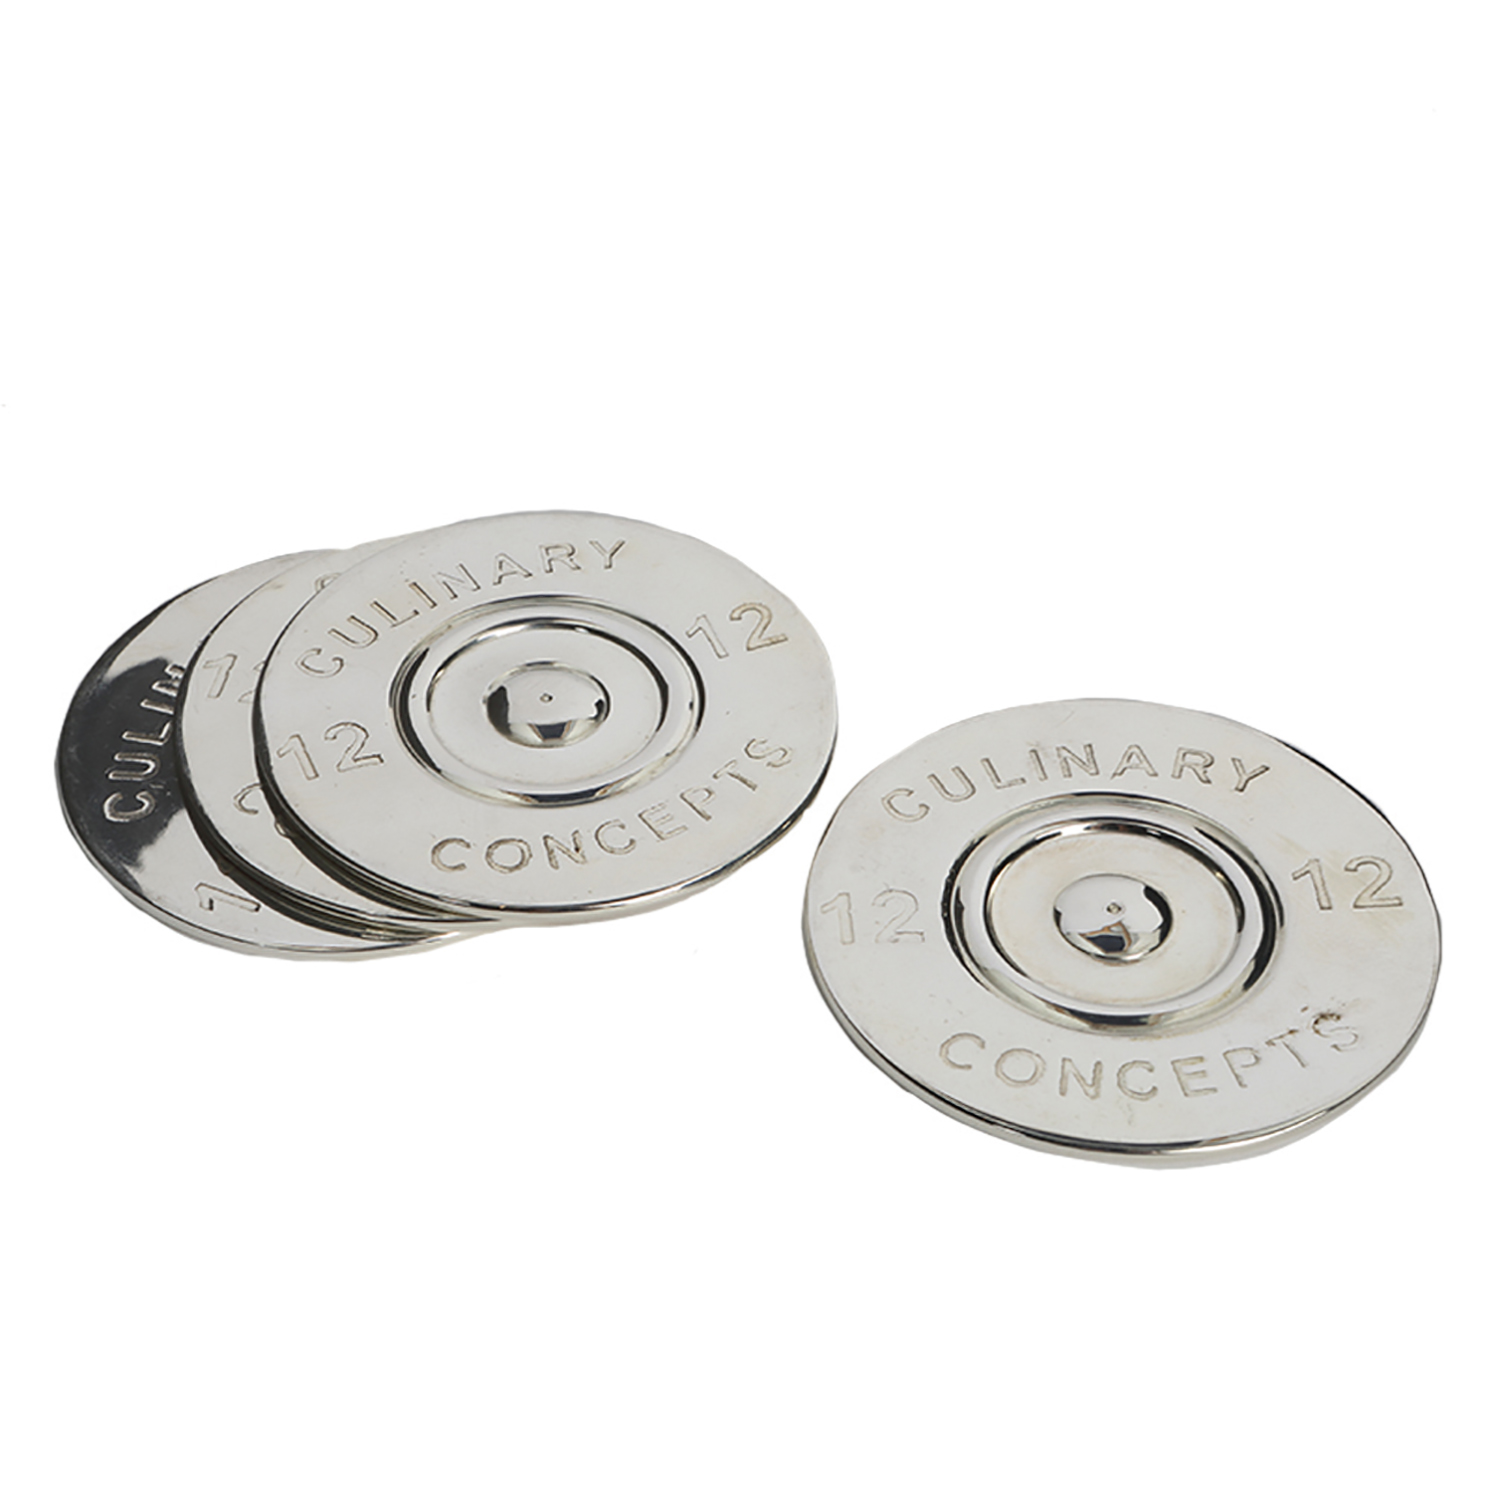 Culinary Concepts – Set of 4 Cartridge Bottle Coasters in Gift Box